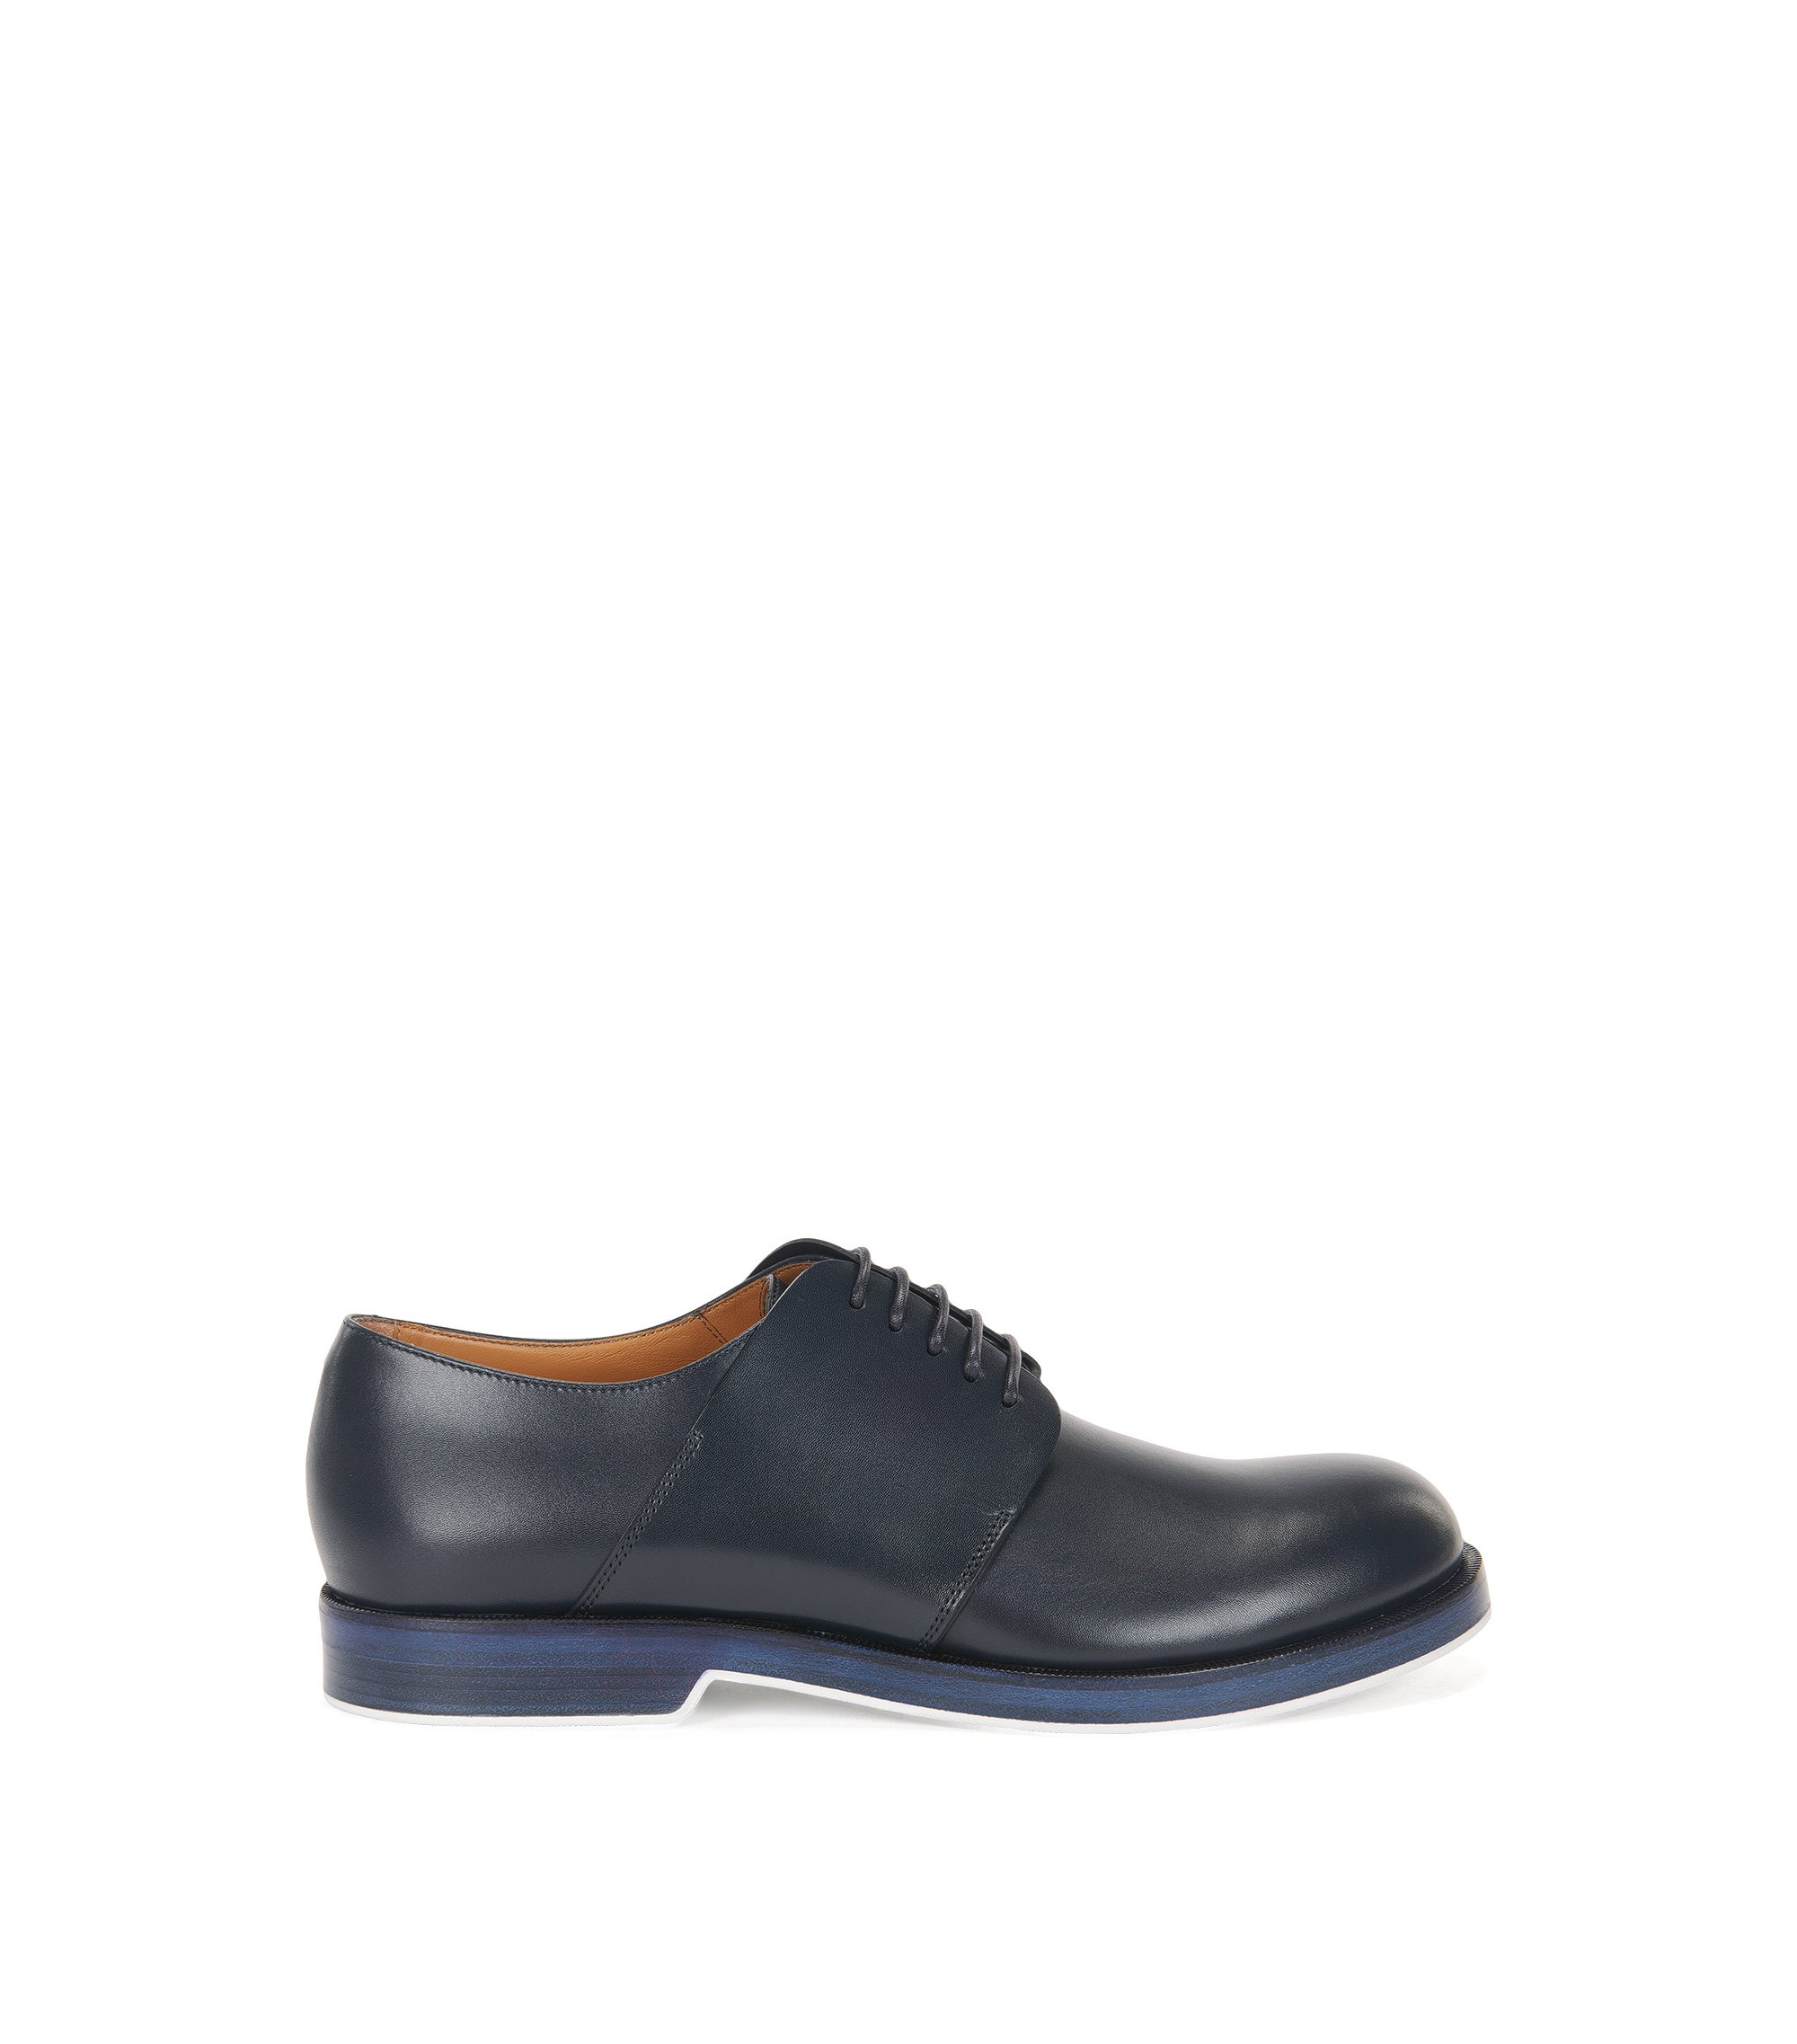 Scarpe derby in pelle, Blu scuro